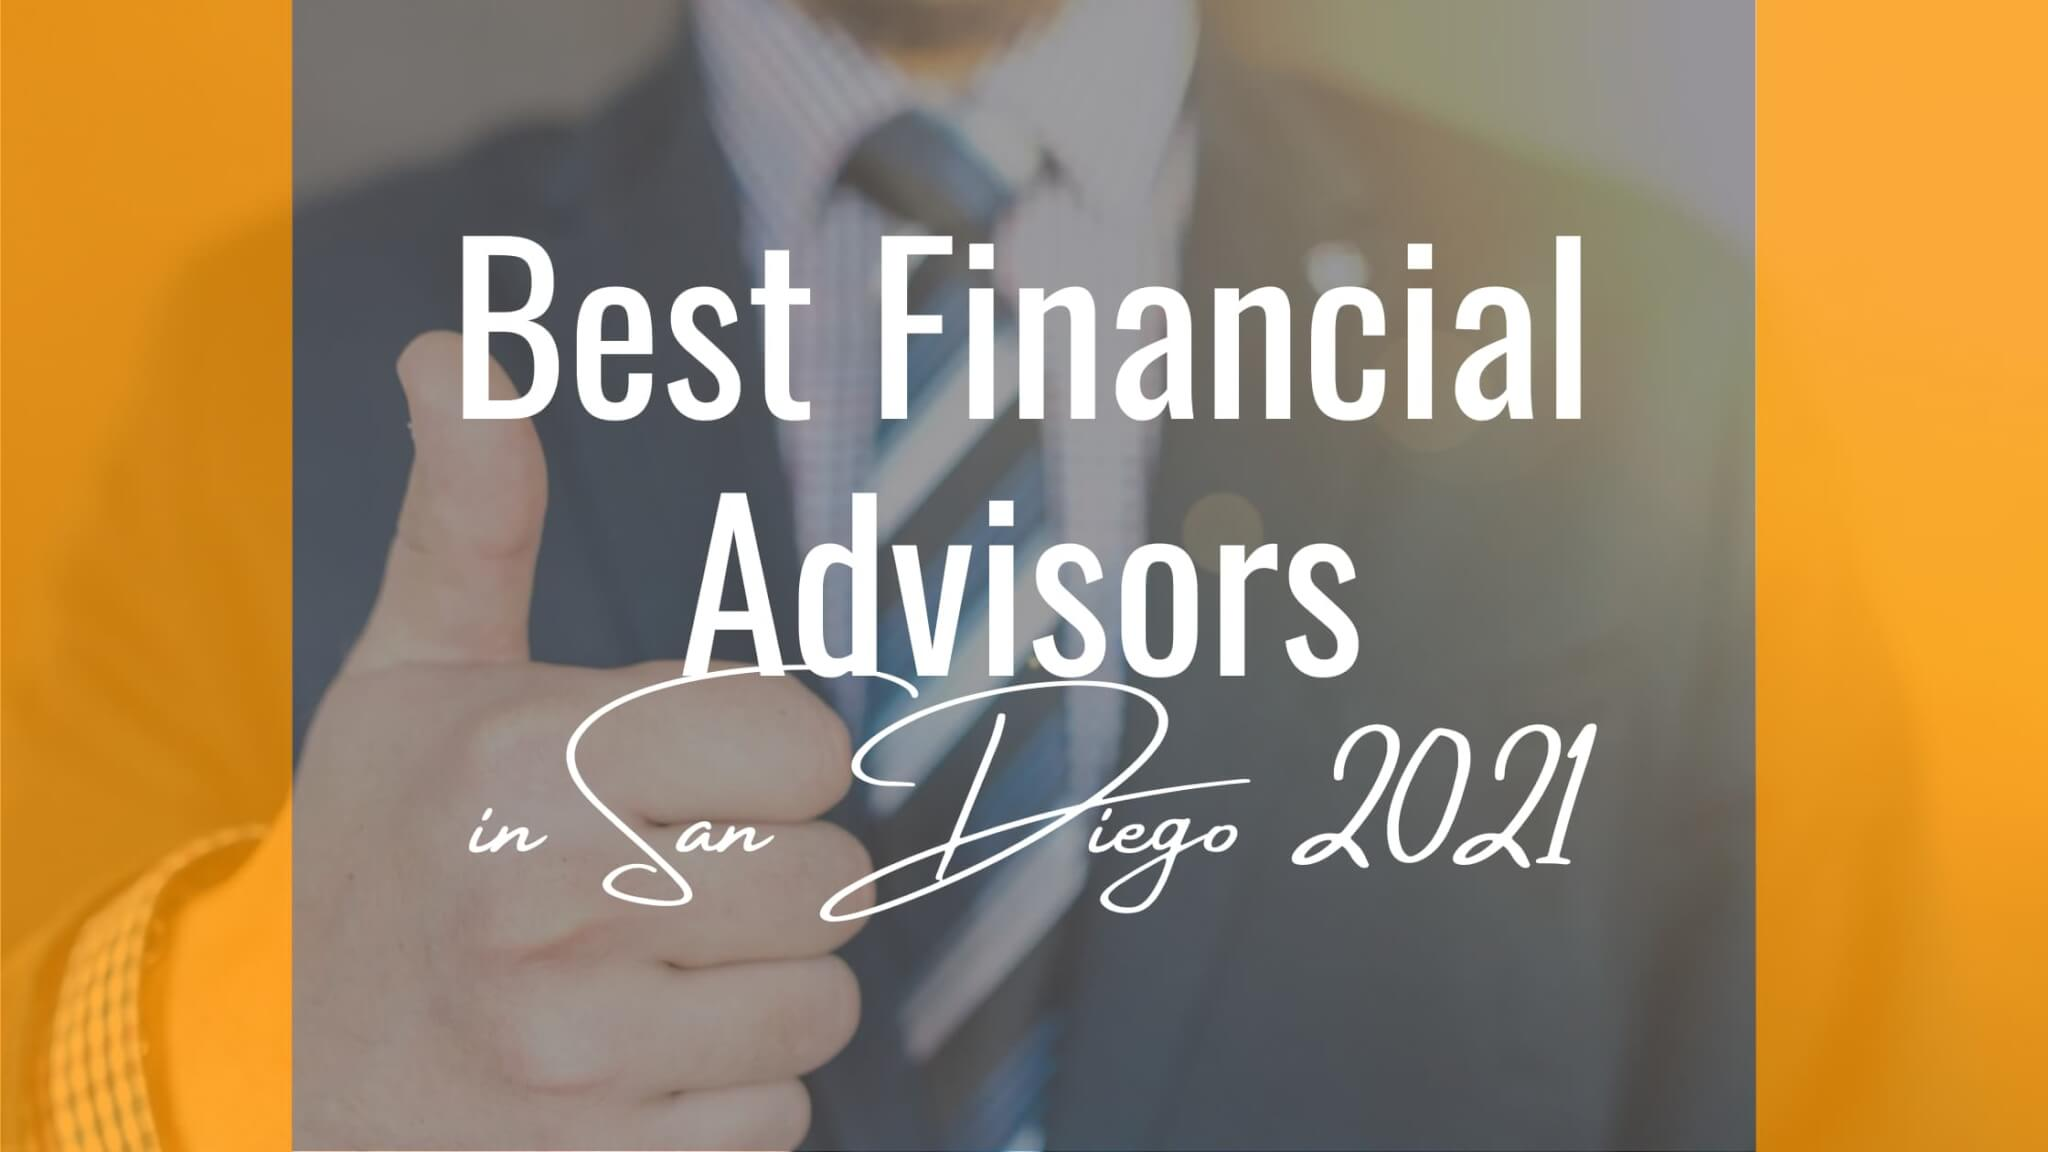 2021 Best Financial Advisors In San Diego